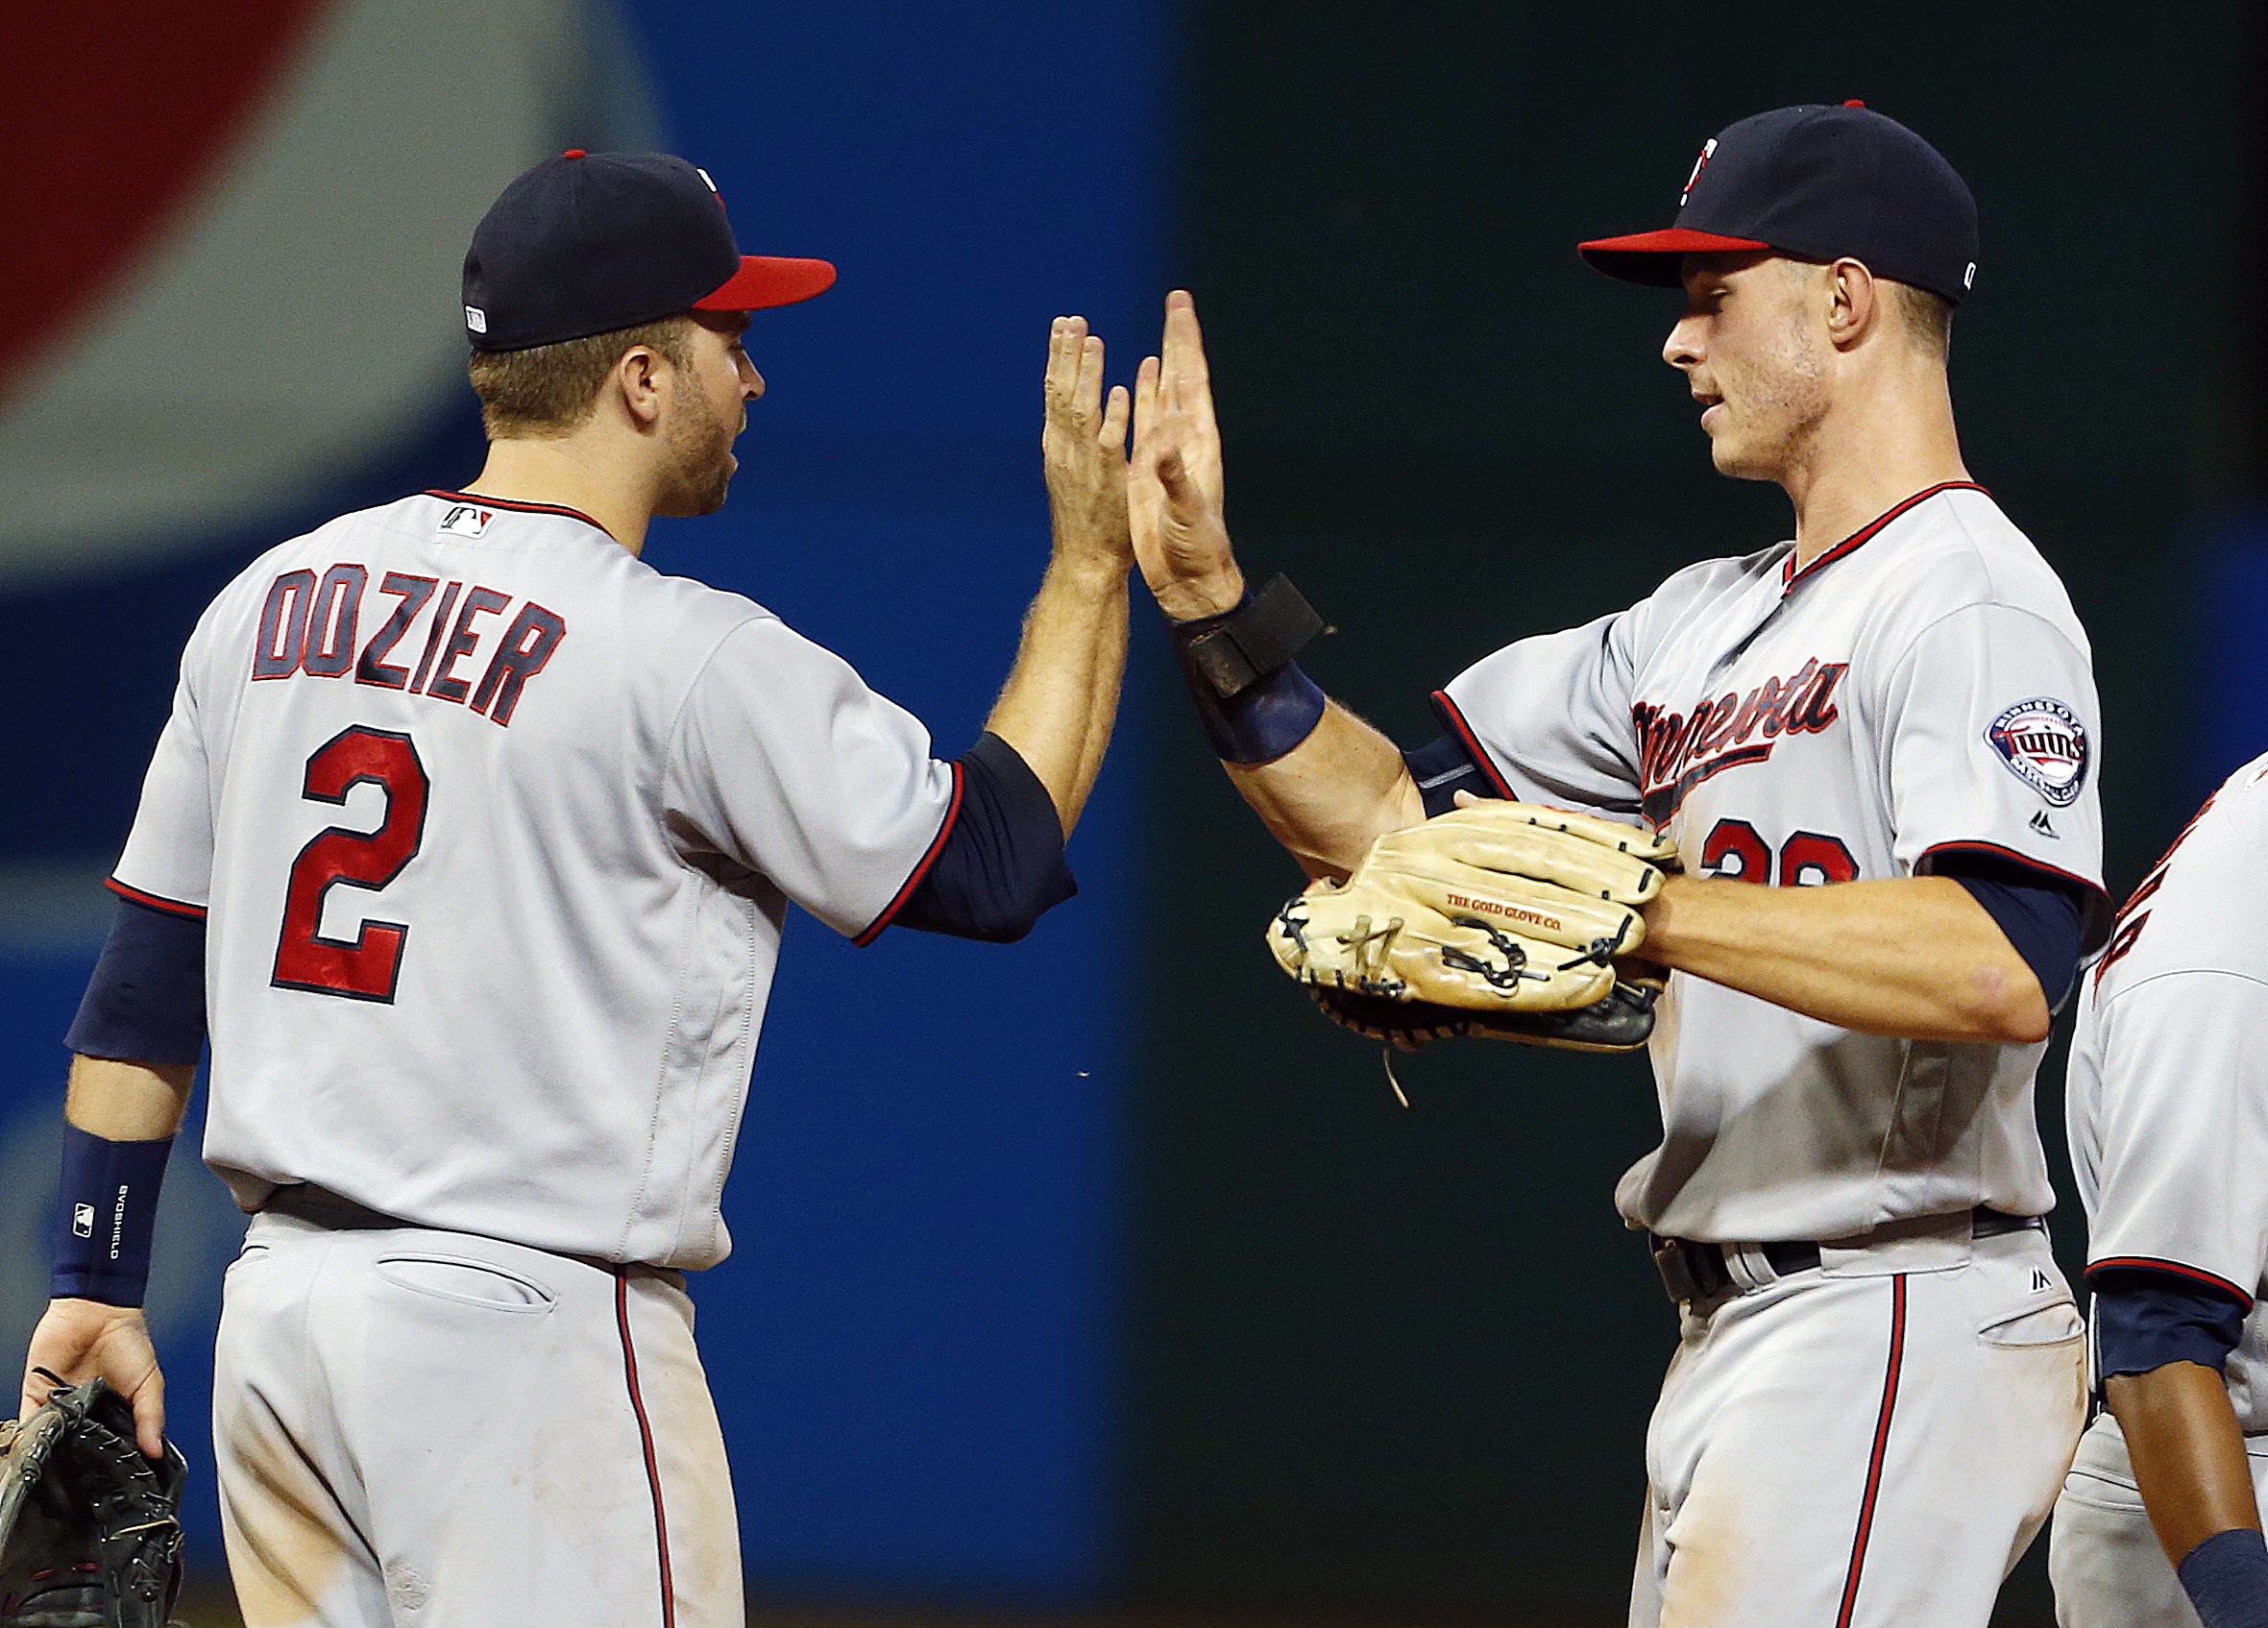 Minnesota Twins' Max Kepler and Brian Dozier (2) celebrate the team's 10-6 win over the Cleveland Indians in a baseball game Tuesday, Aug. 2, 2016, in Cleveland. (AP Photo/Ron Schwane)